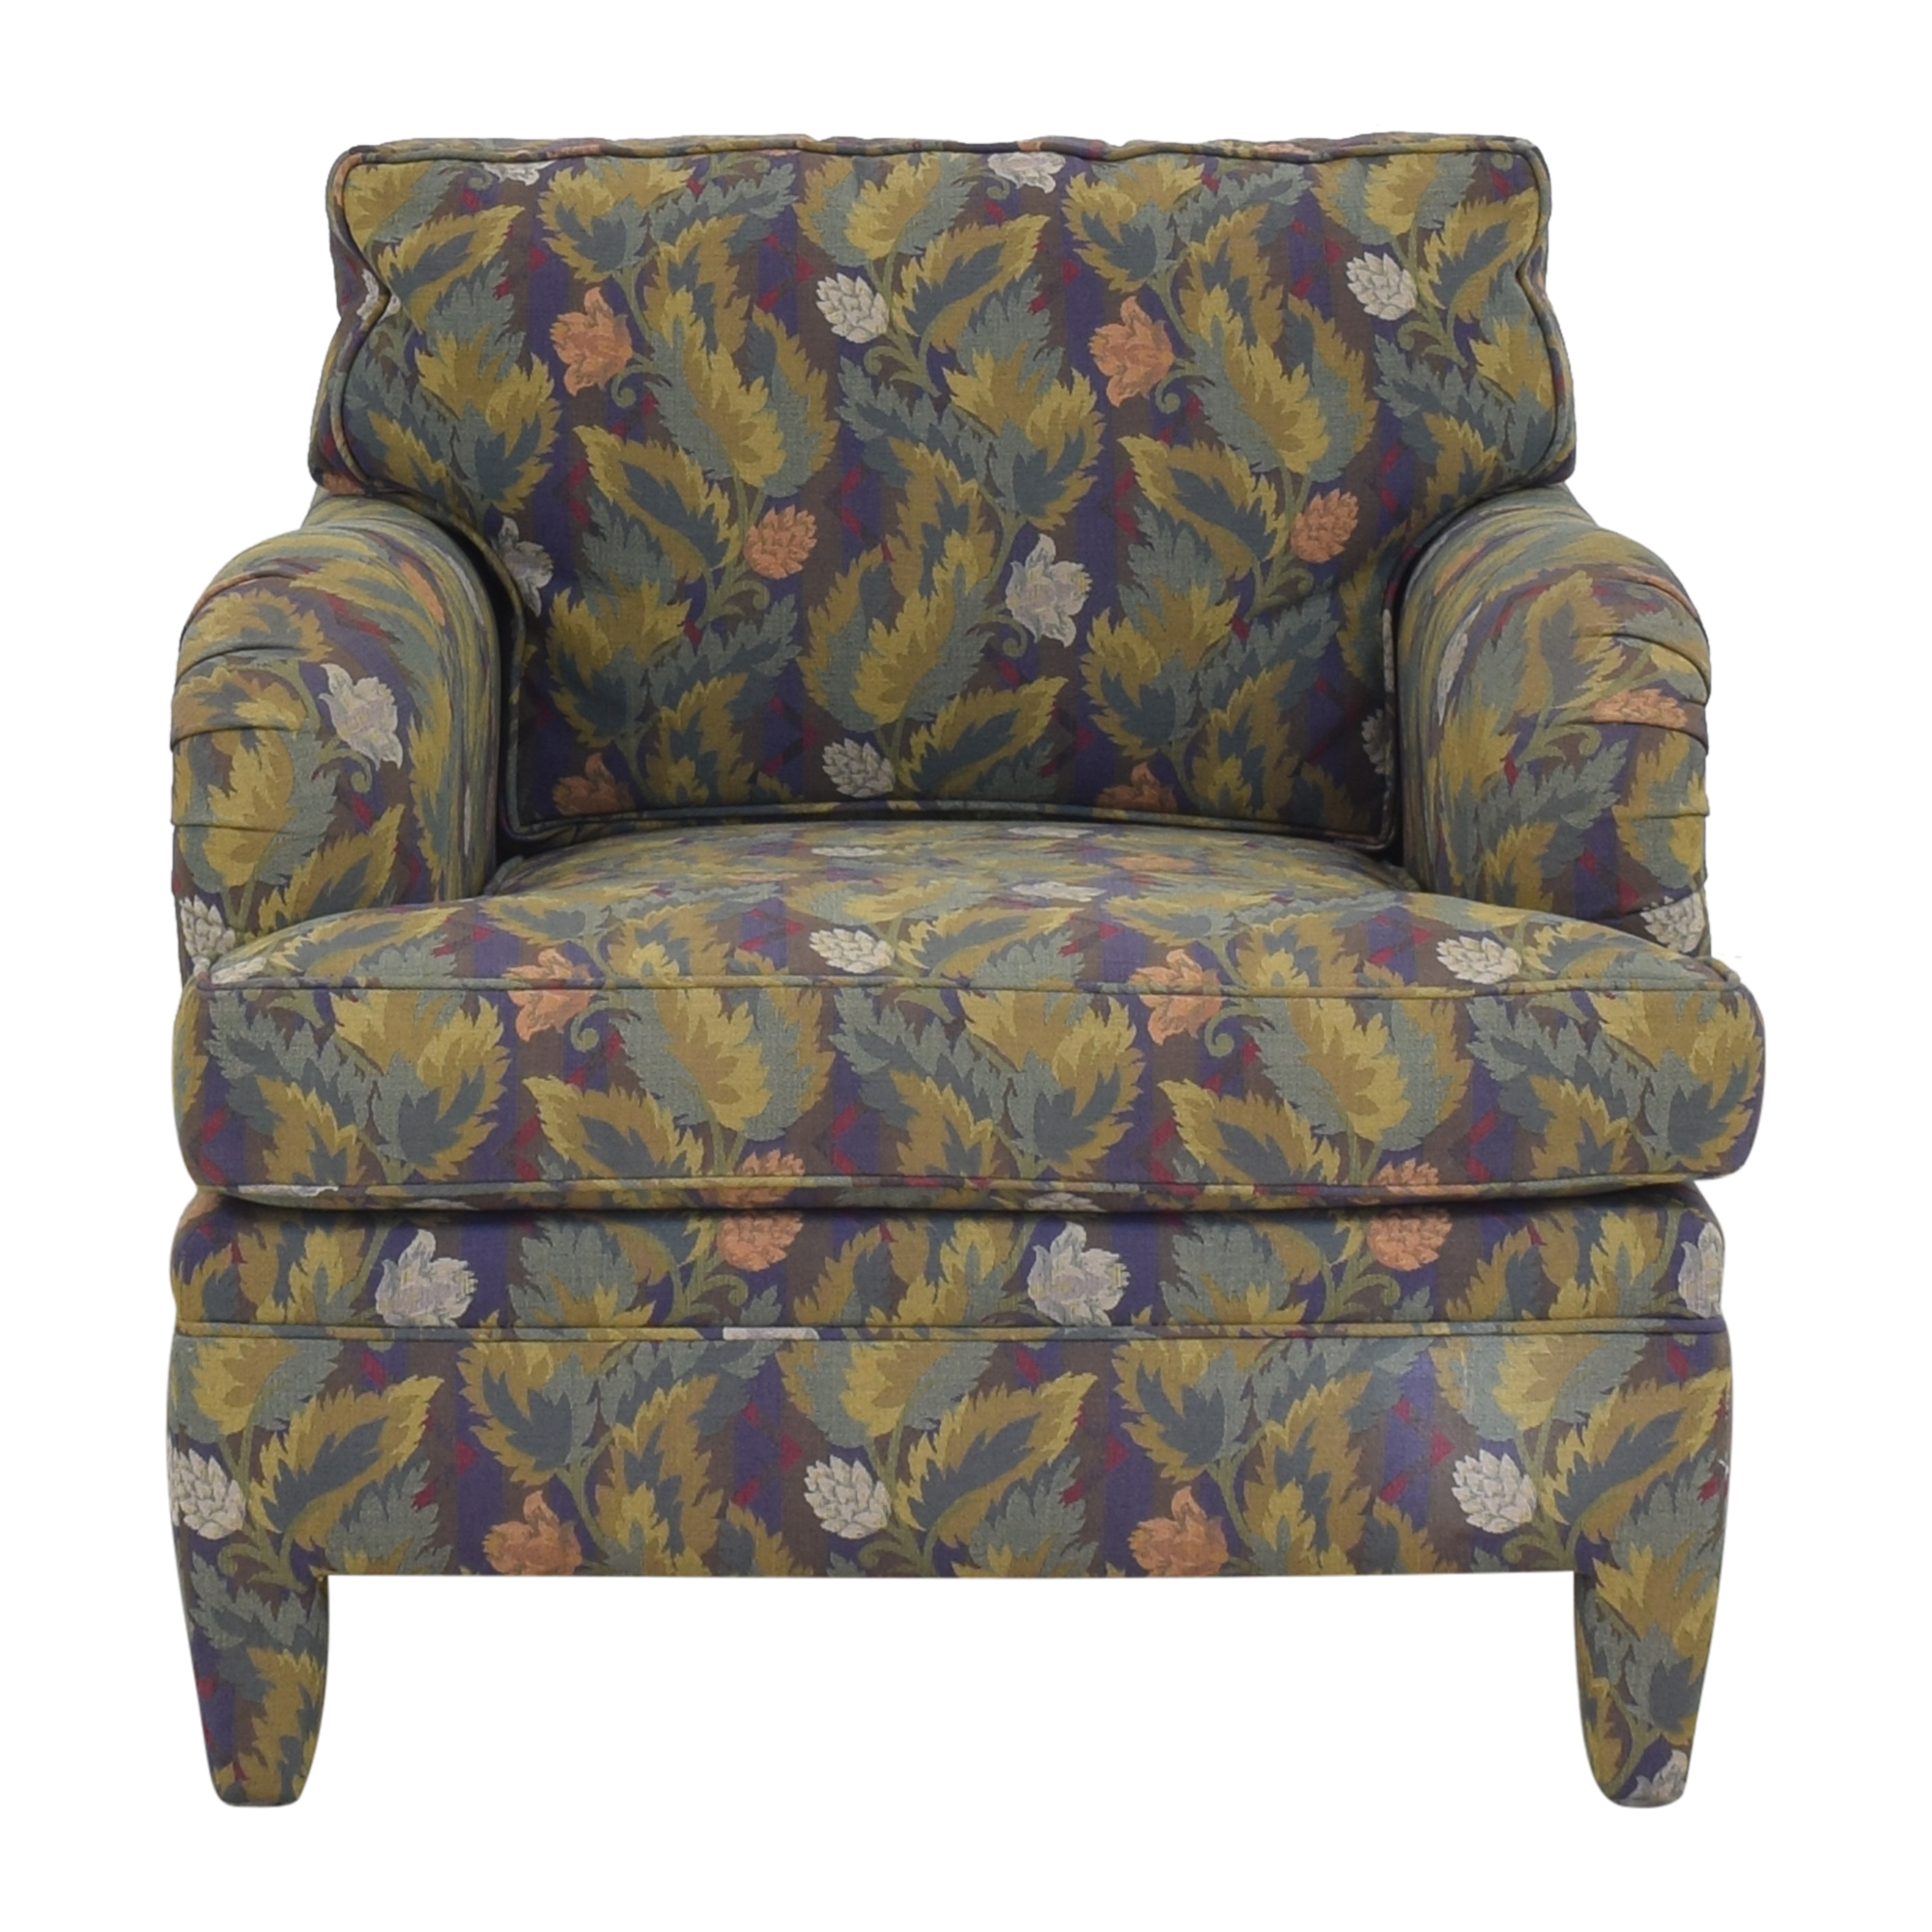 Donghia Donghia Upholstered Club Chair ct